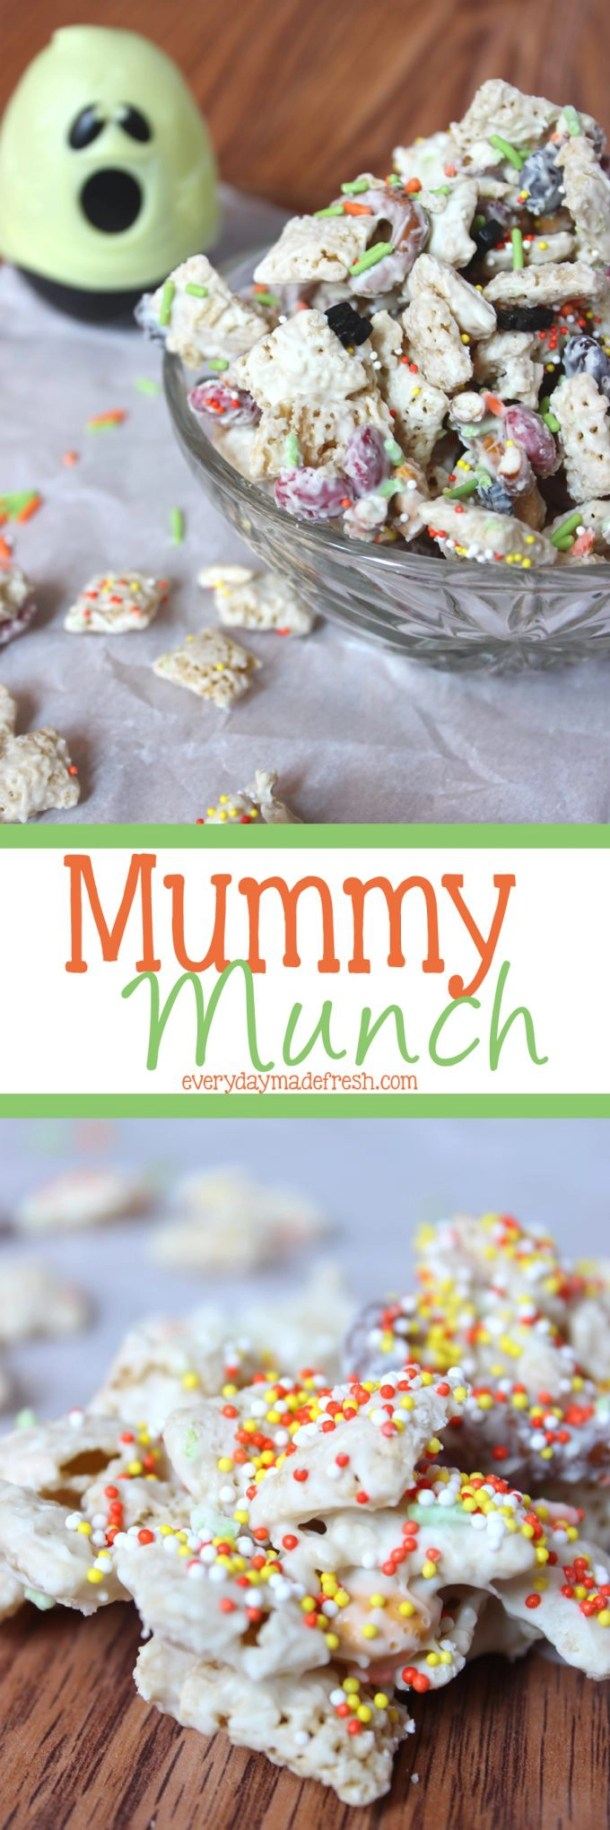 Simple to make, and ready in less than 10 minutes, this fun Mummy Munch is sure to be a hit with everybody! | EverydayMadeFresh.com